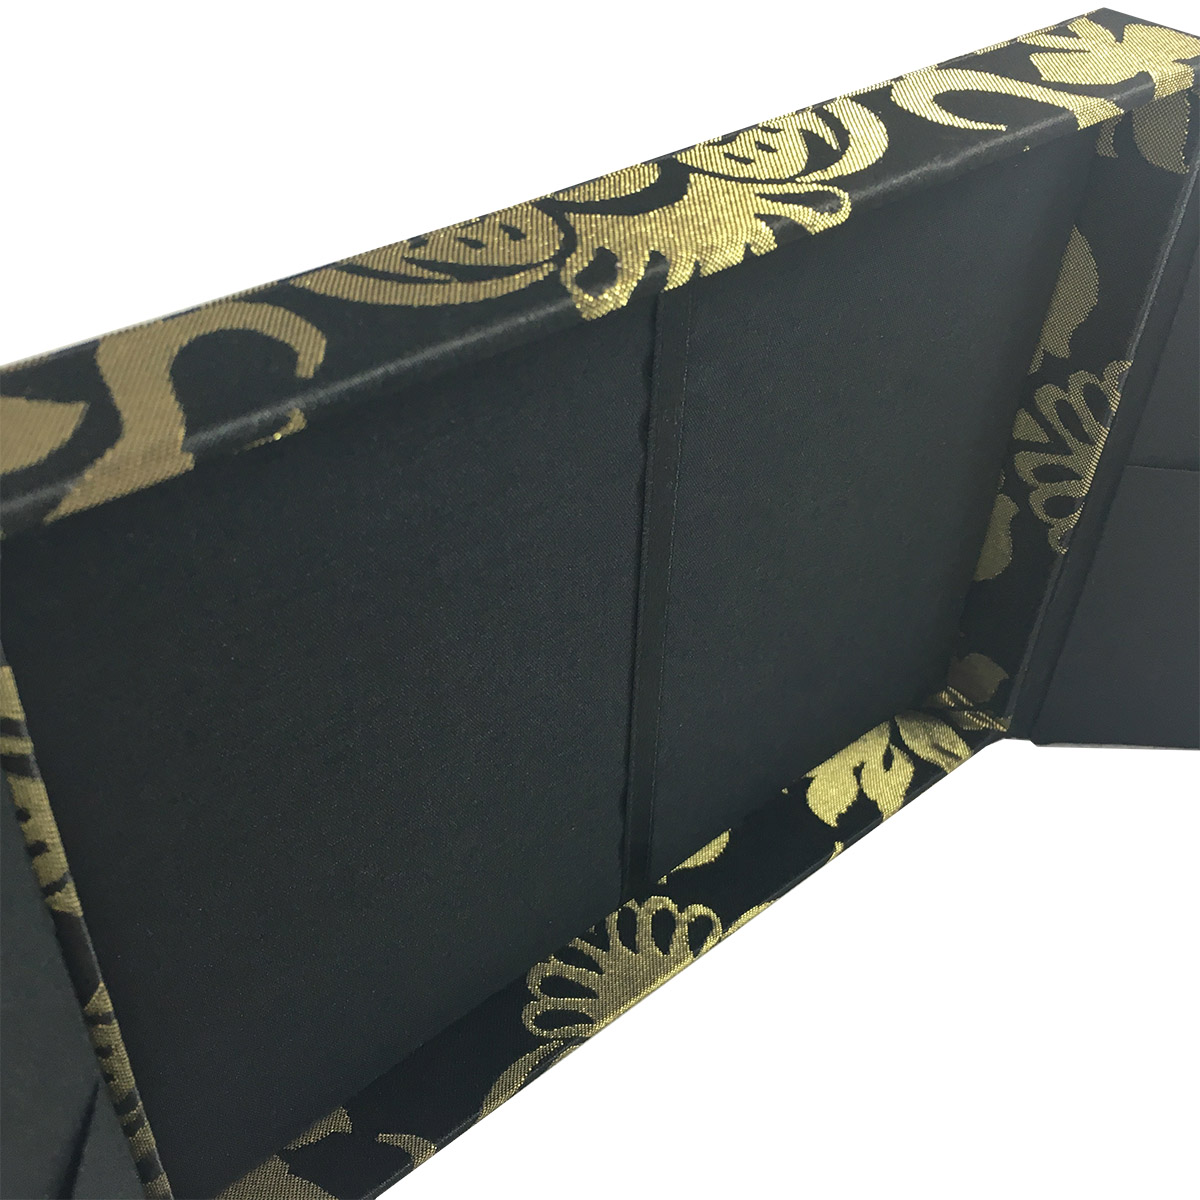 Brocade silk box